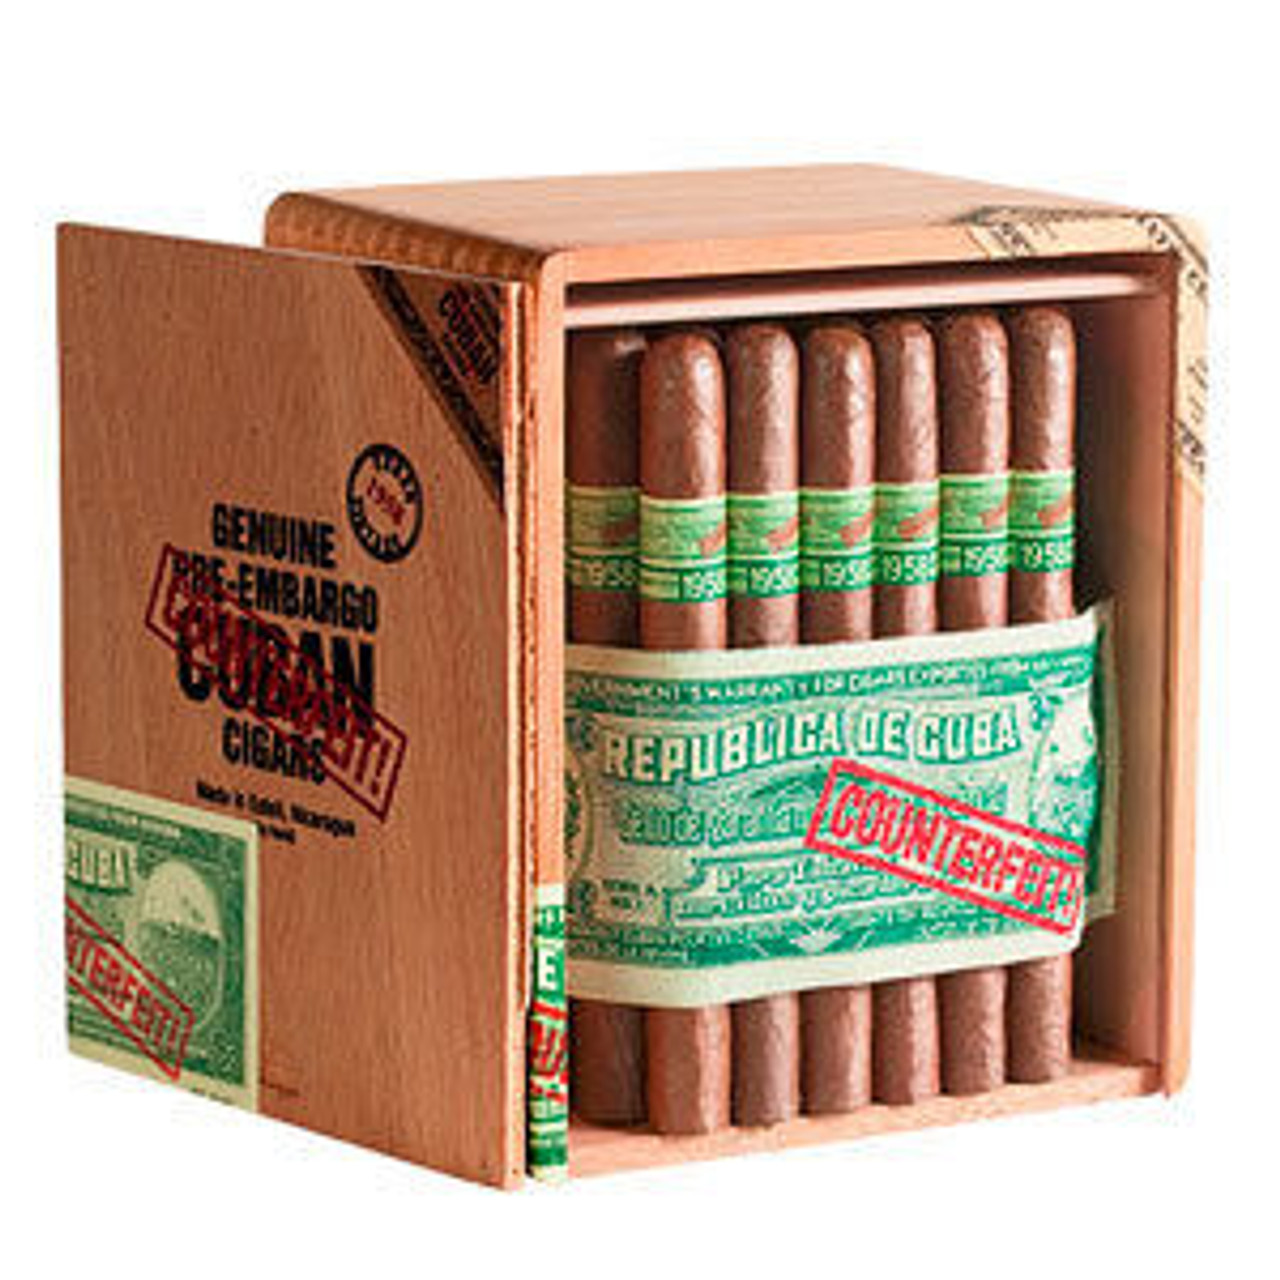 Genuine Pre-Embargo Counterfeit Cubans 1958 Prominentes Cigars - 7 x 52 (Box of 25)